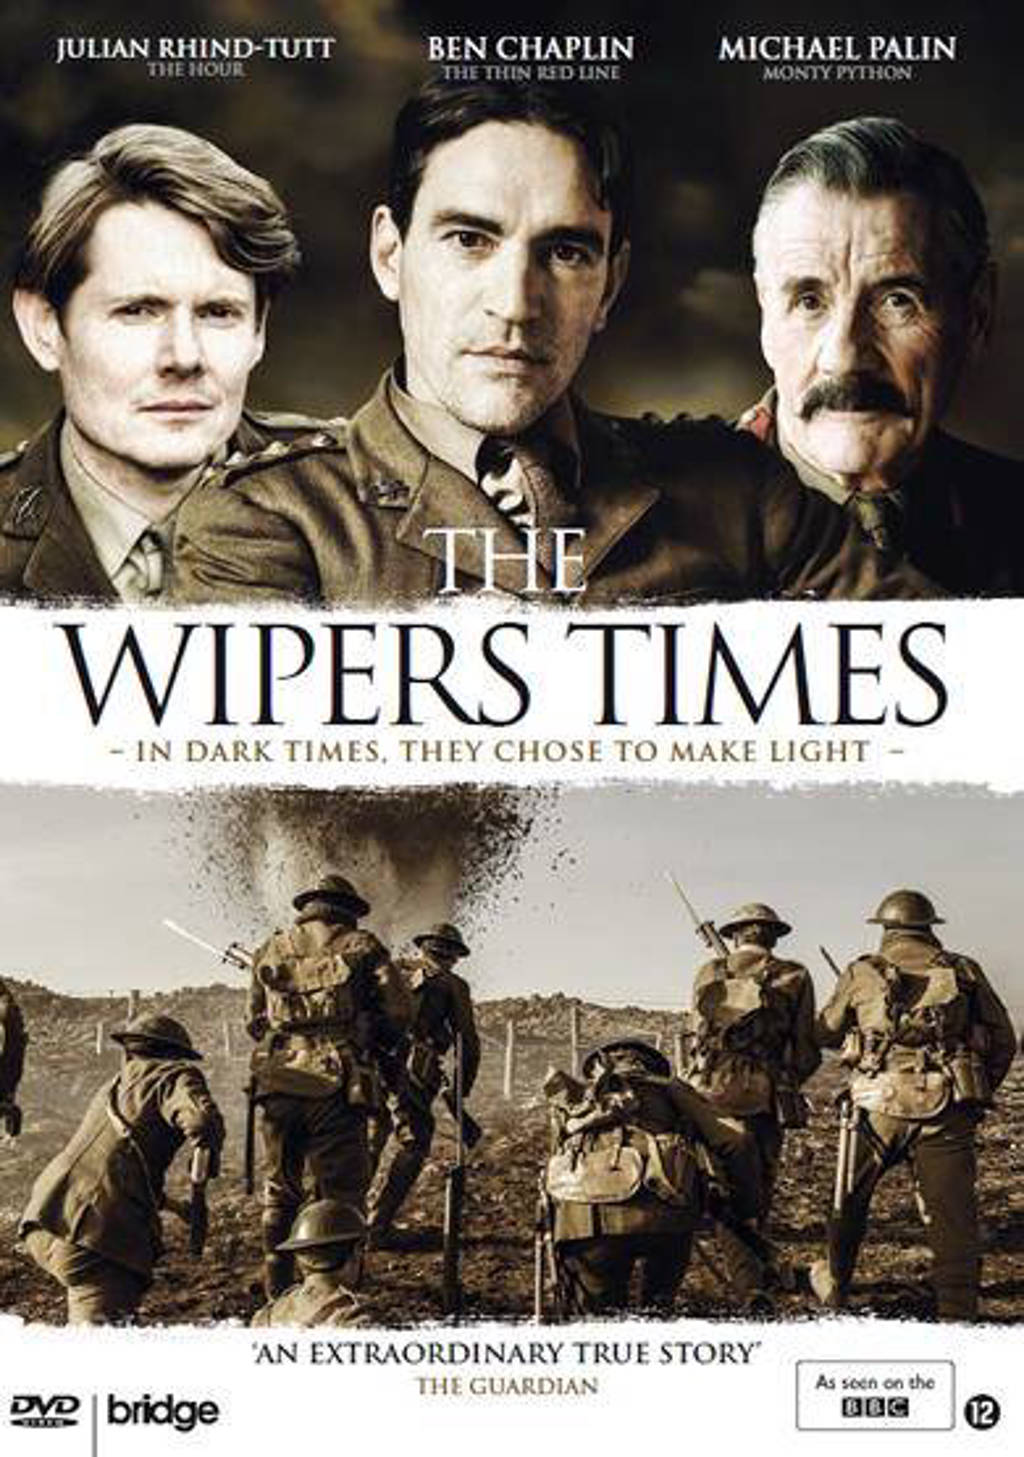 Wipers times (DVD)